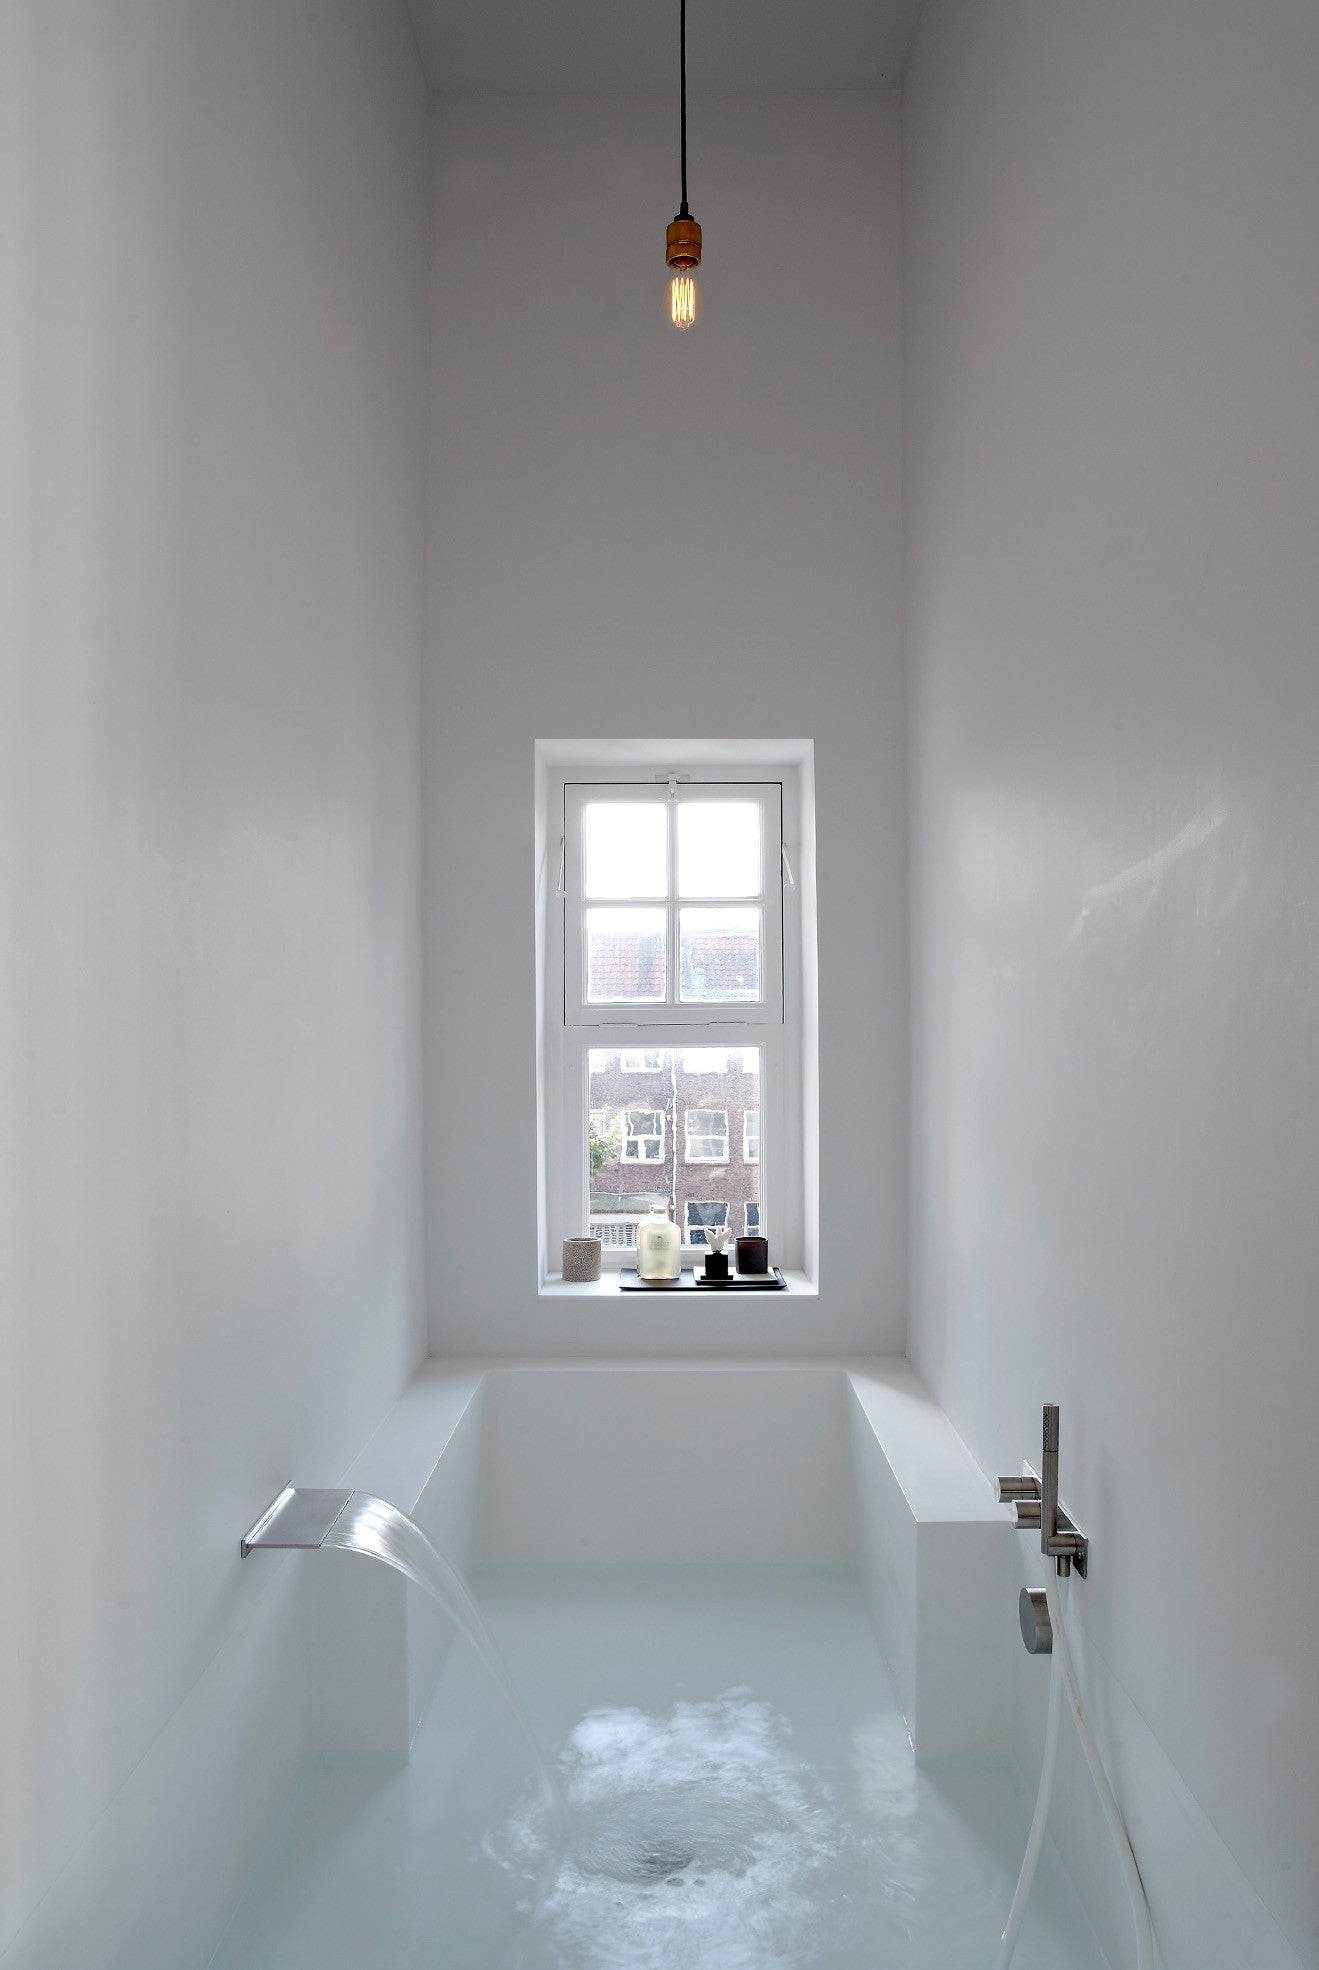 step down bath and wet room fill the room with water to bathe